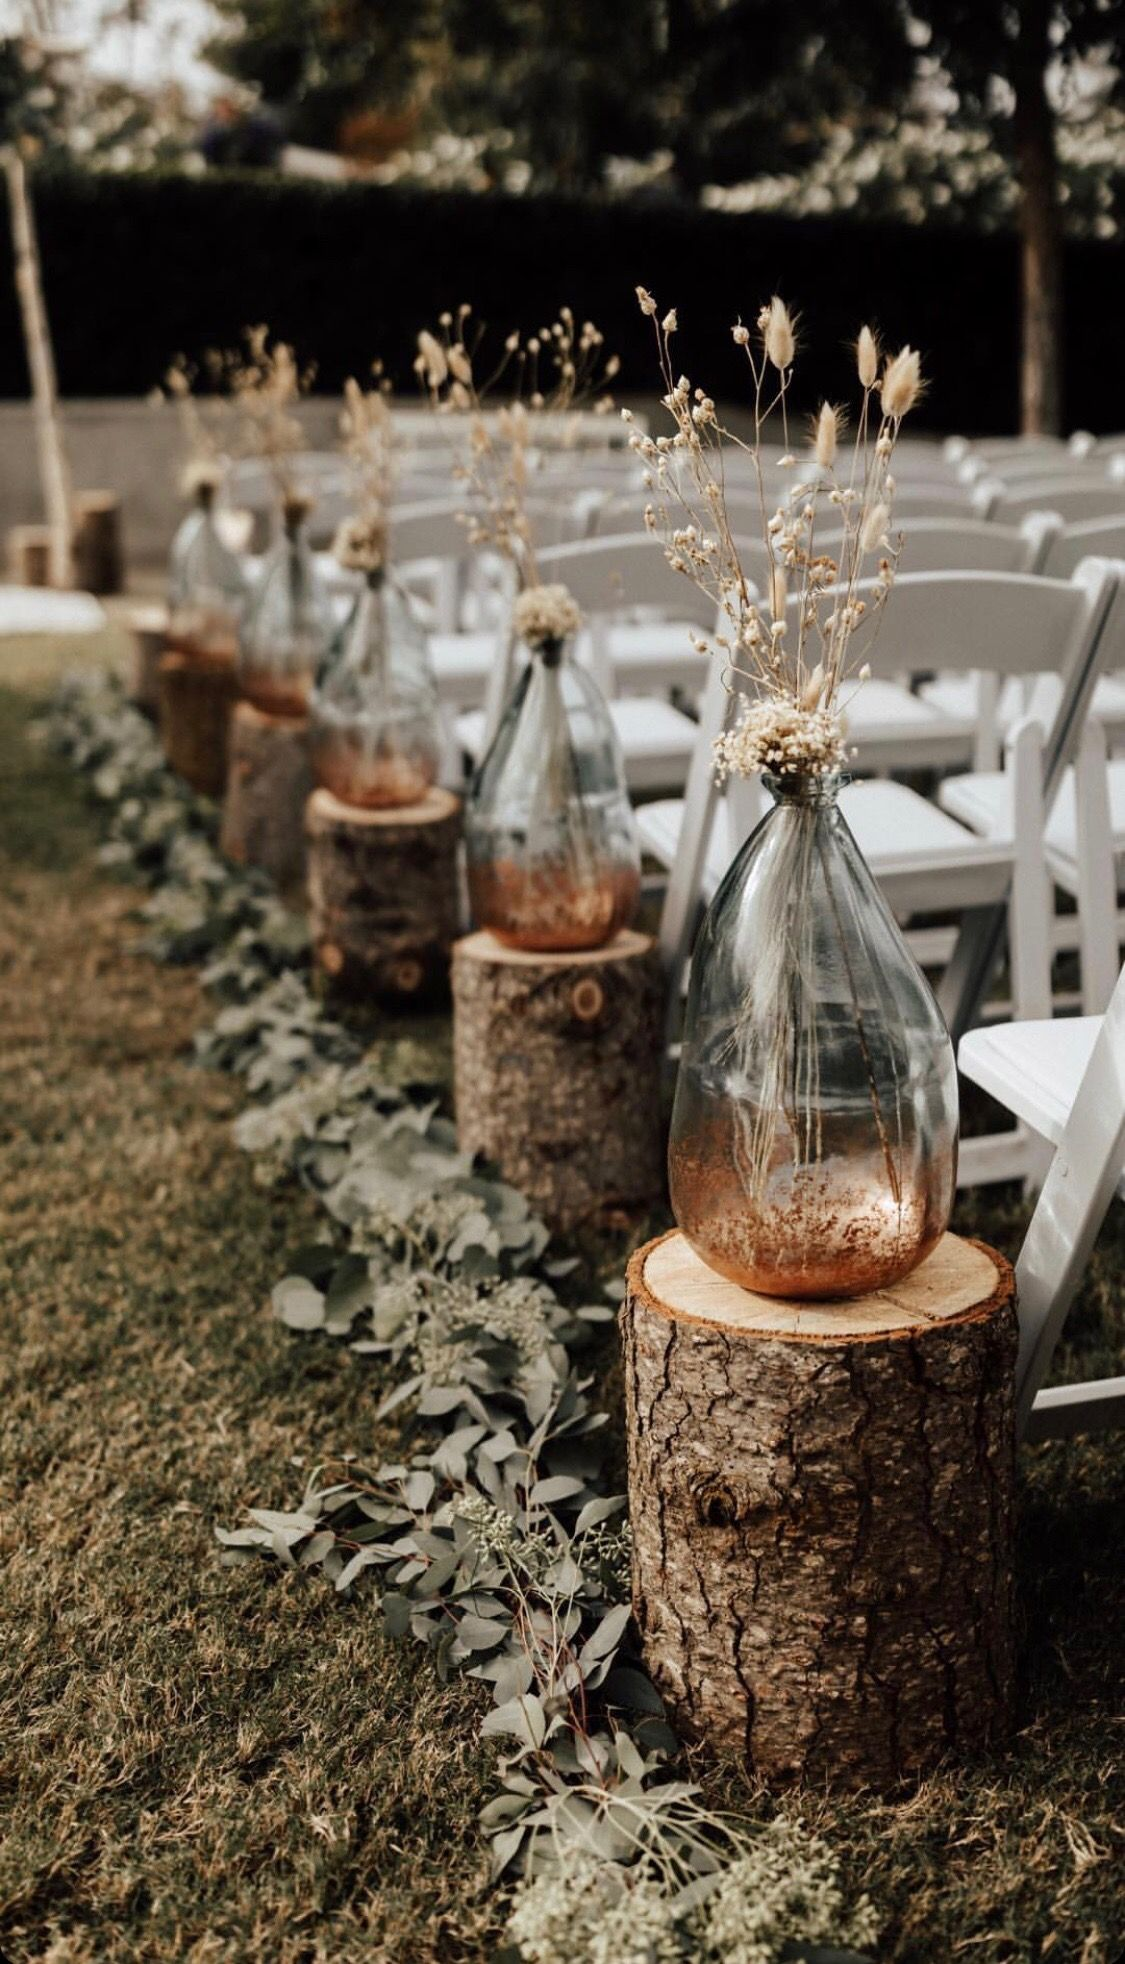 Wedding decorations shabby chic october 2018 Shabby and chic bottles and greenry ceremony  Wedding Flora and